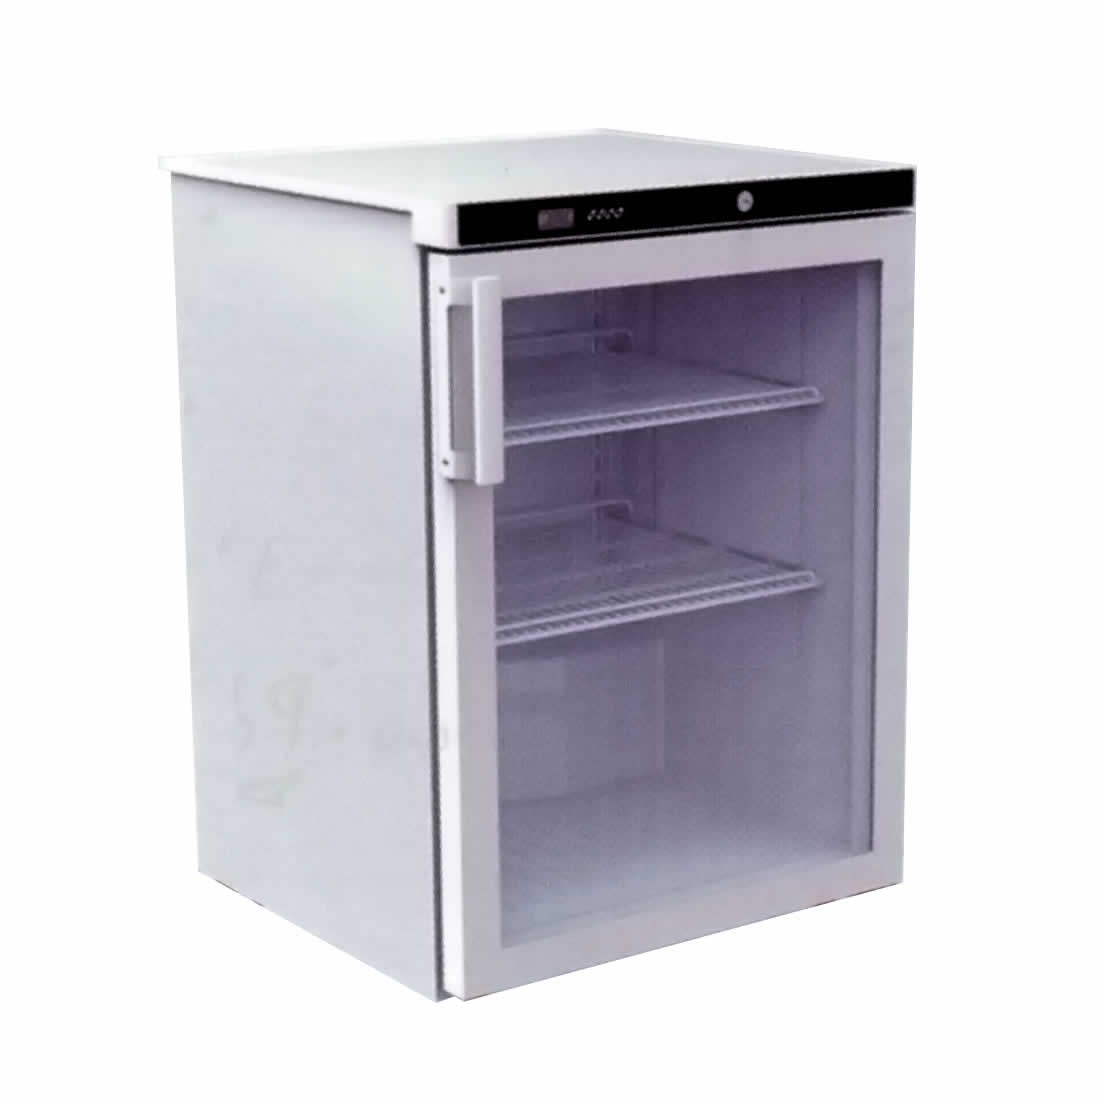 Chiller with glass door - FED180G